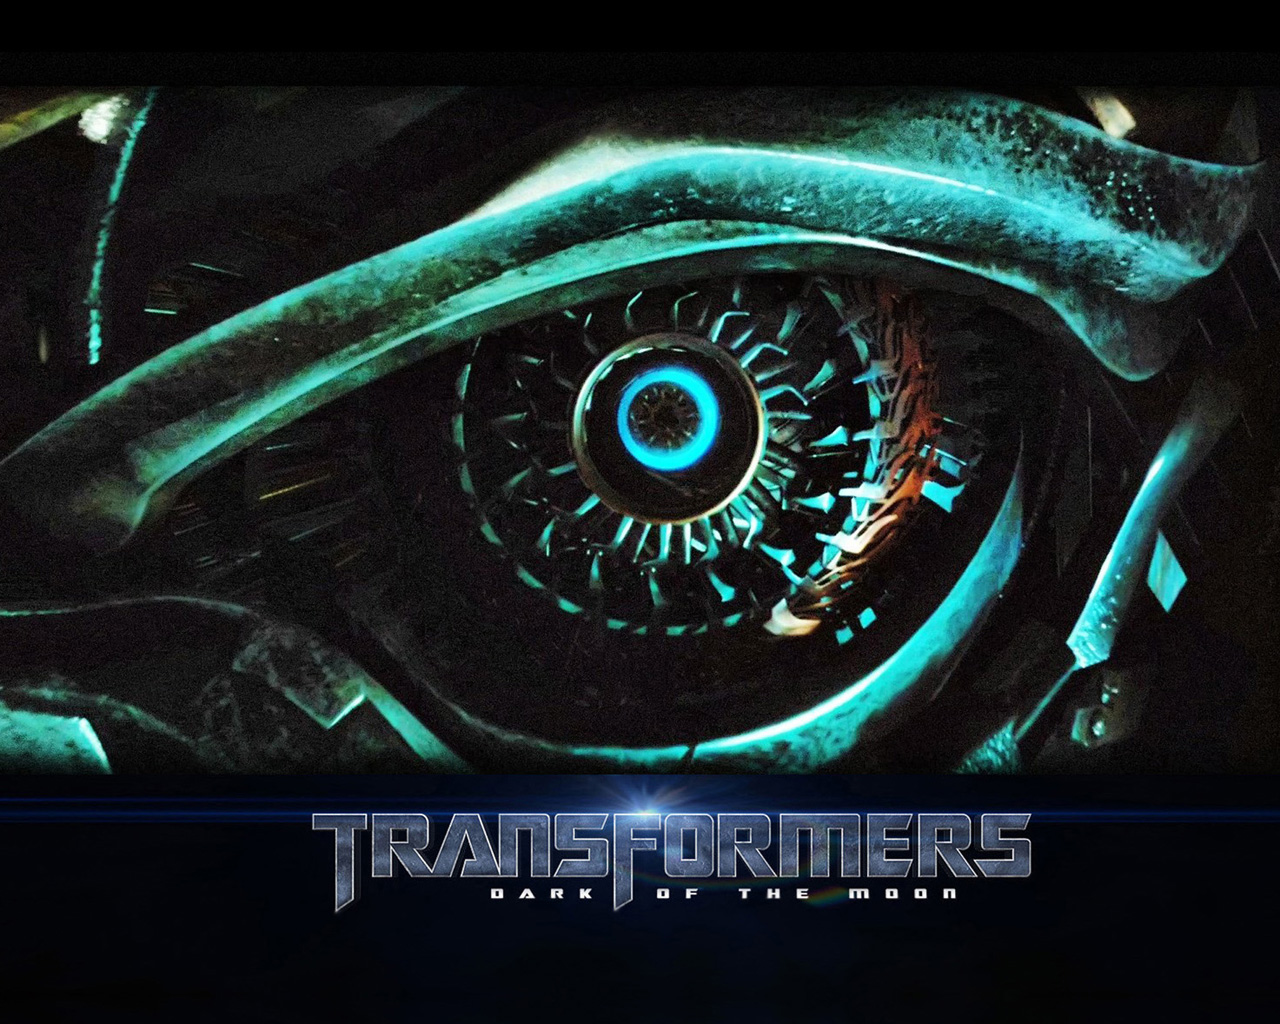 Transformers 3 Dark of the Moon Wallpapers 1280 x 1024